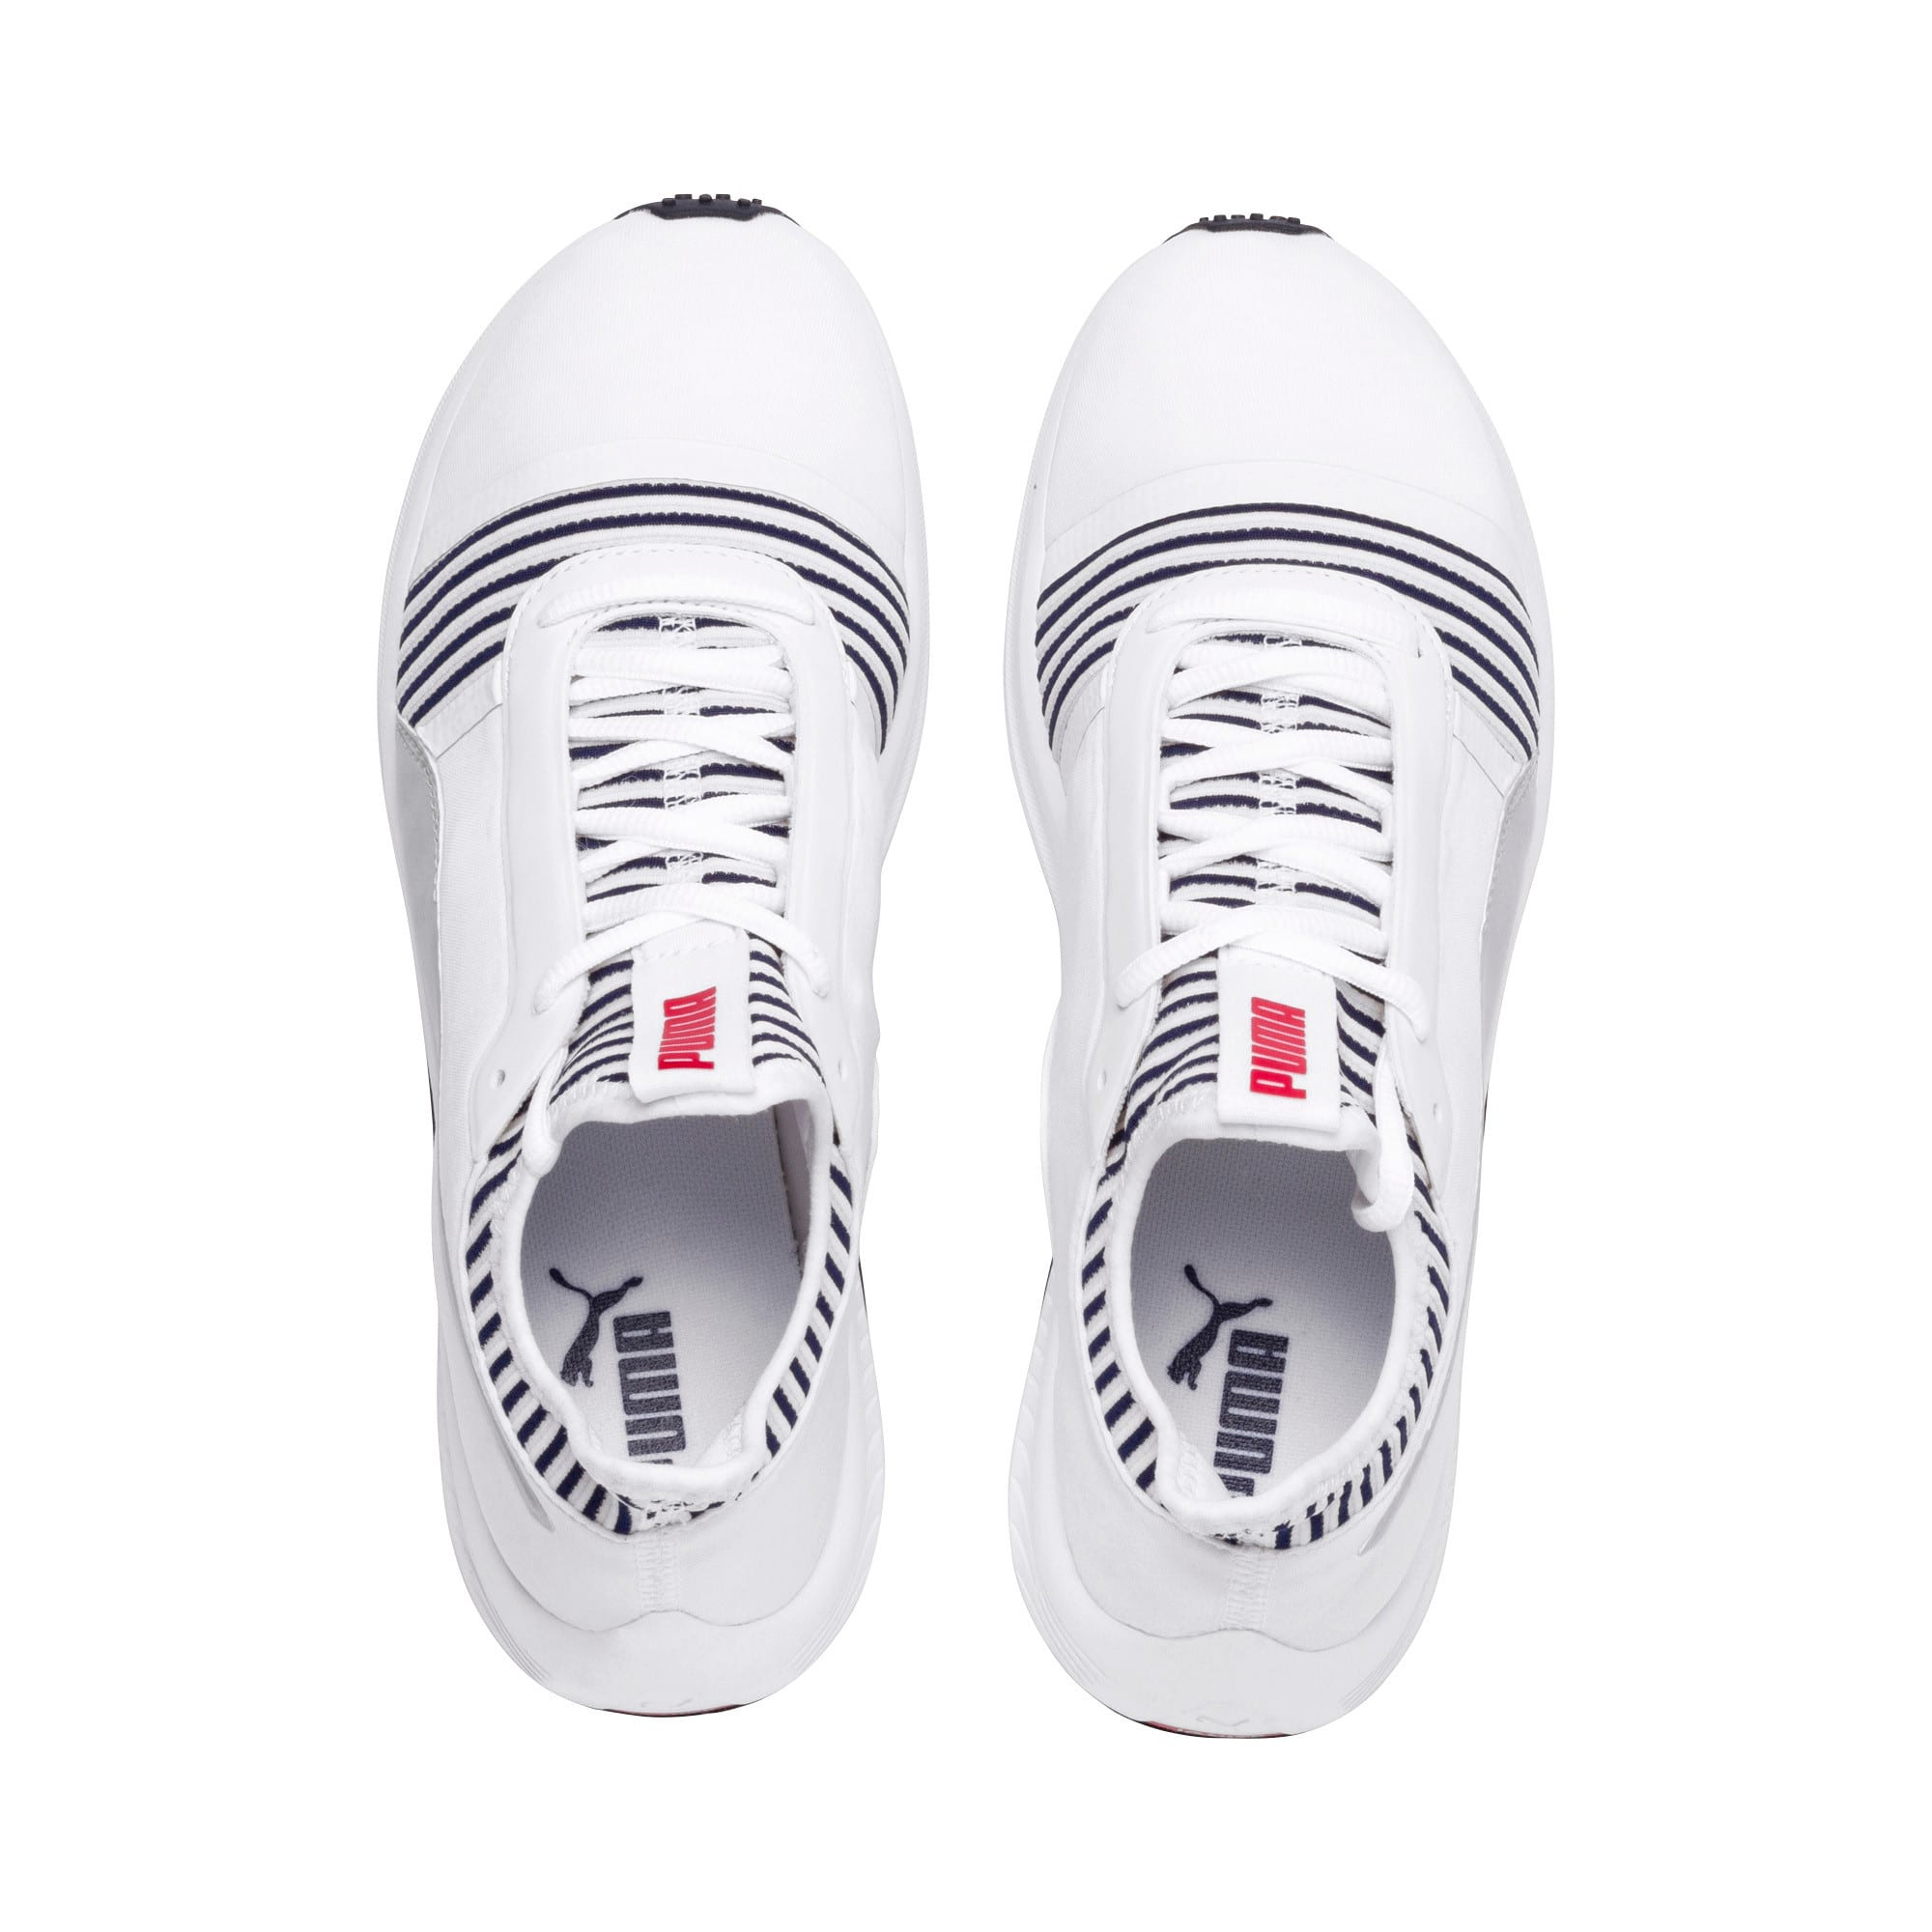 Thumbnail 7 of Amp XT Women's Trainers, Puma White-Peacoat, medium-IND